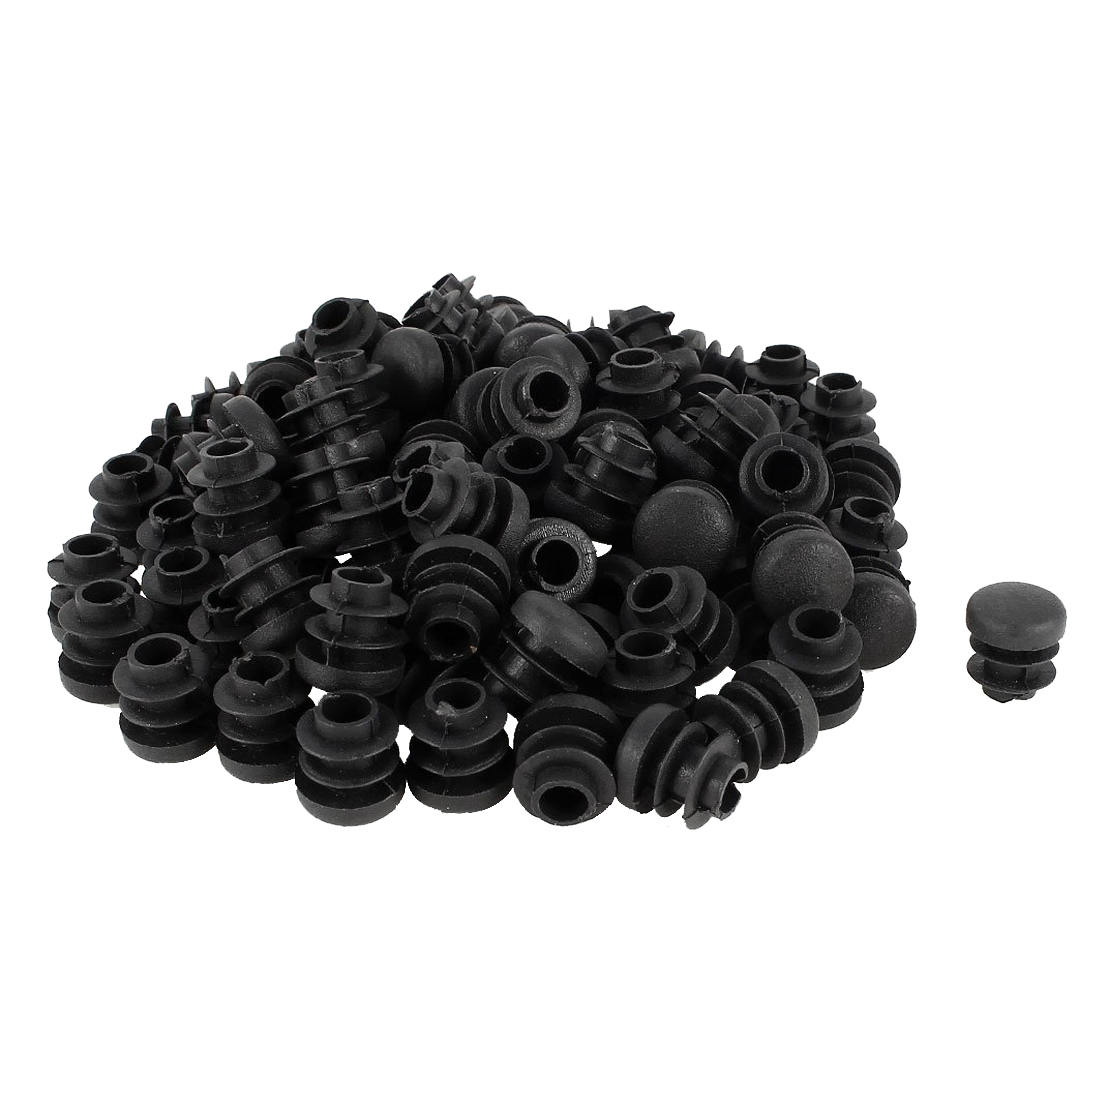 Hot Sale 100 Pcs Plastic Blanking End Cap Round Tube Inserts 14mm Dia Black